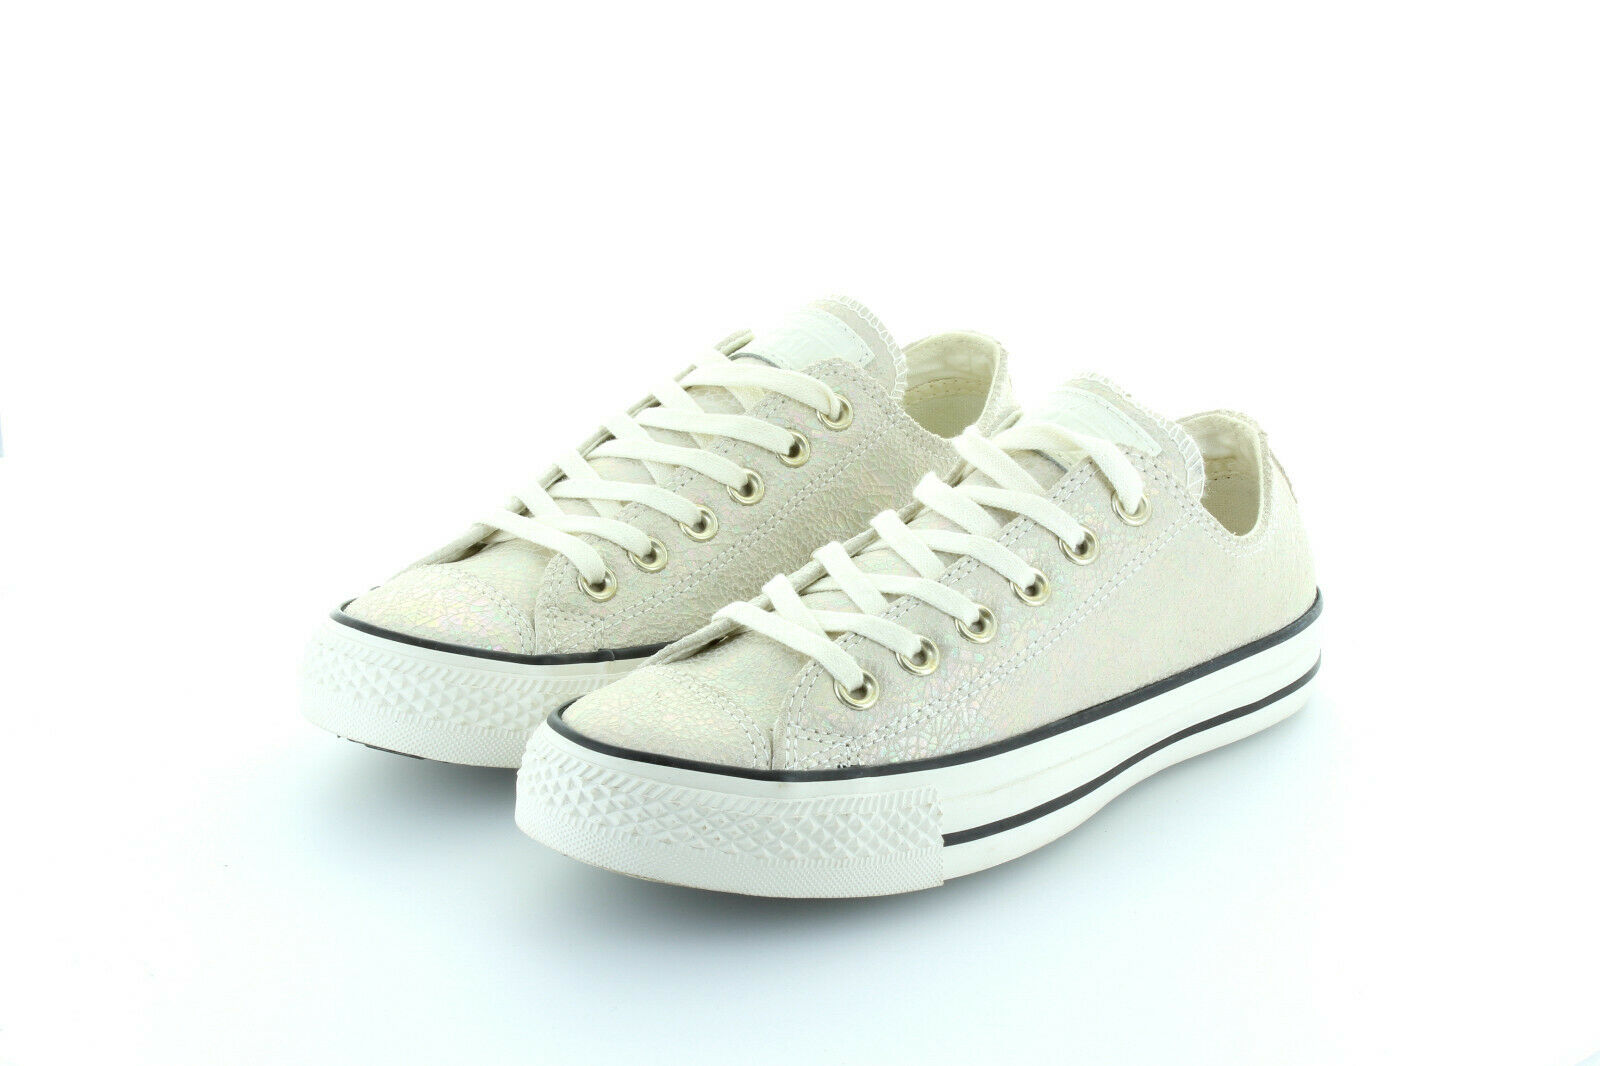 Converse All Star Chuck Taylor Ox Oil Slick Crusty Creme Leather Gr. 37,5   38,5